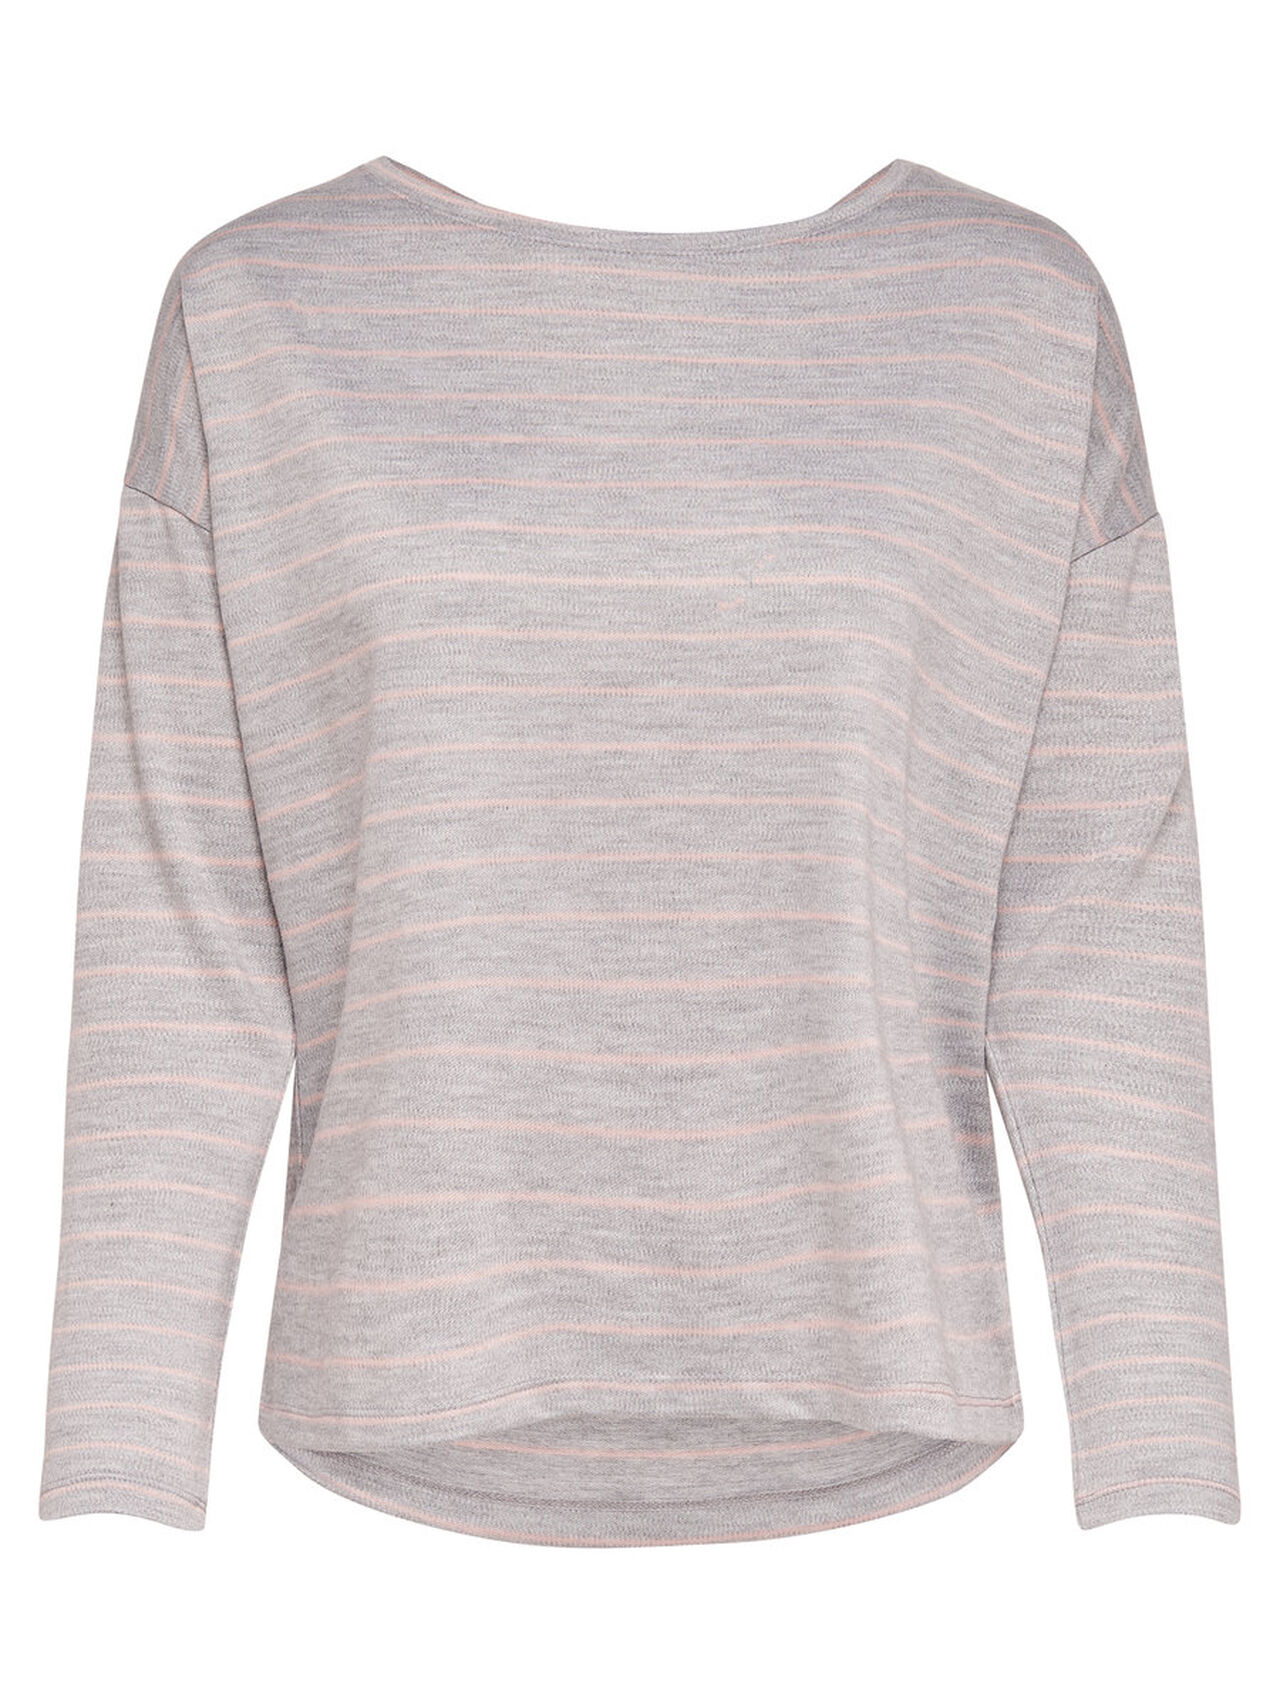 ONLY Striped Long Sleeved Top Women Grey